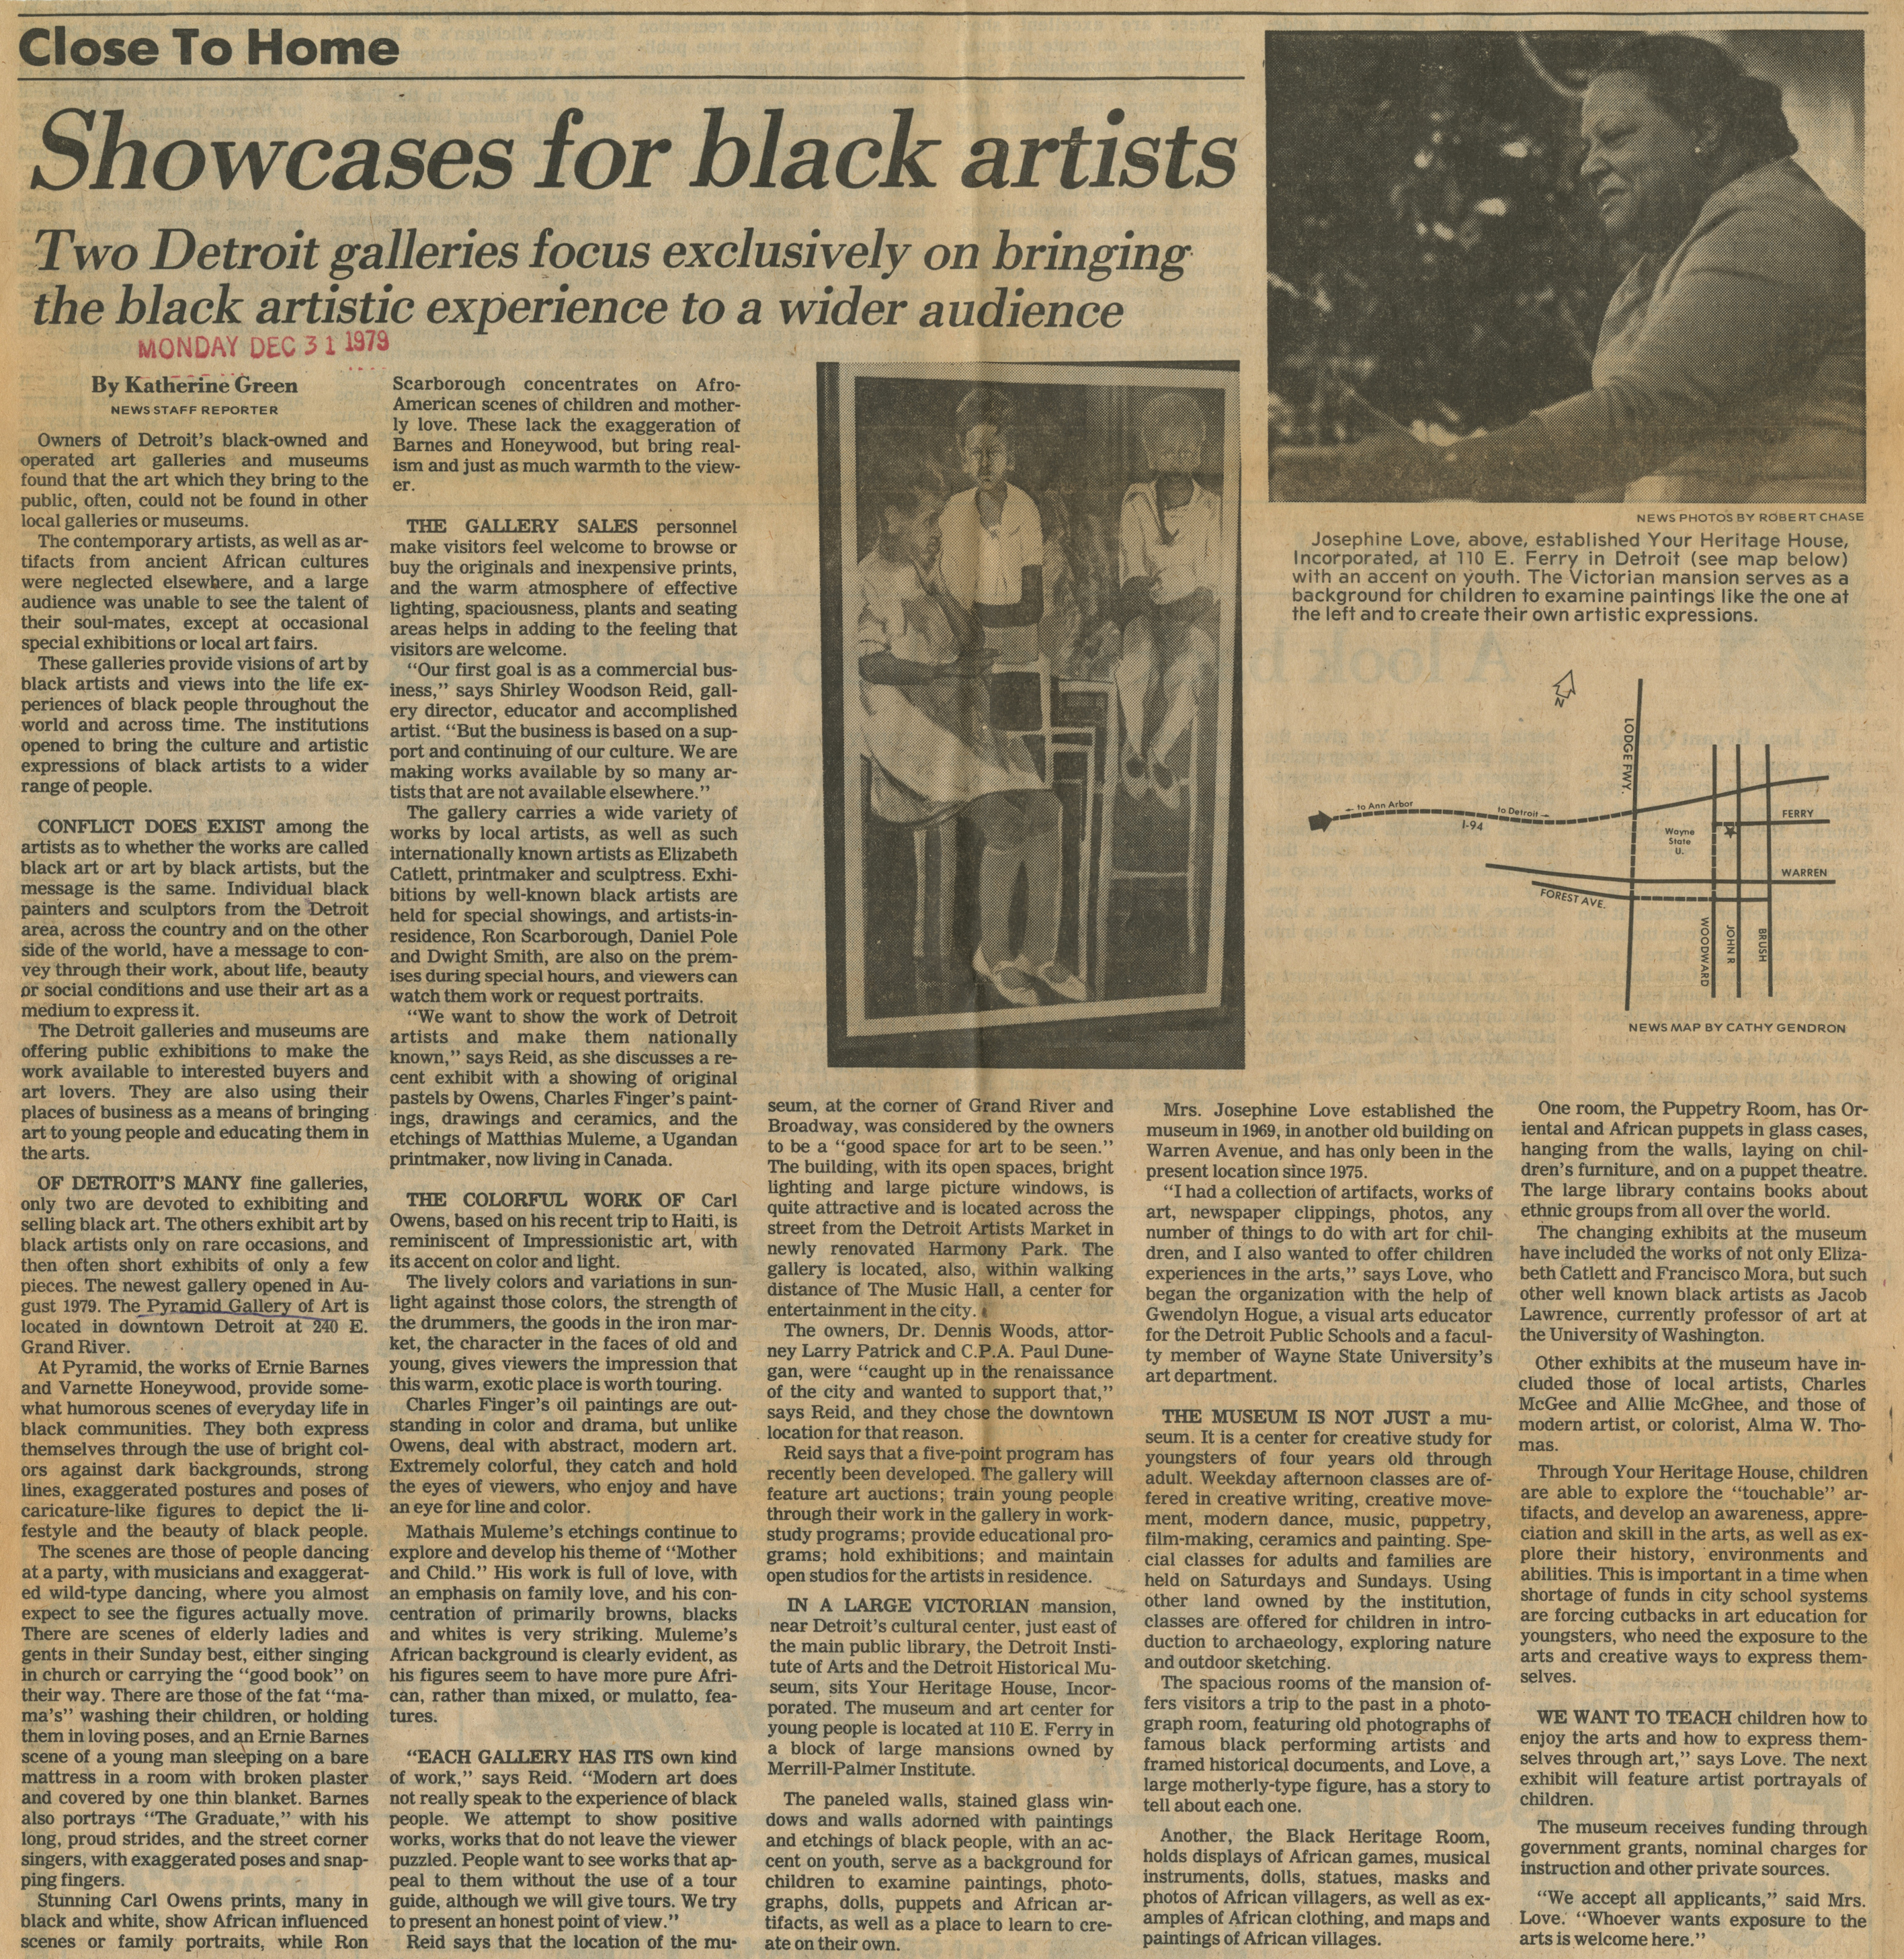 Showcases For Black Artists image